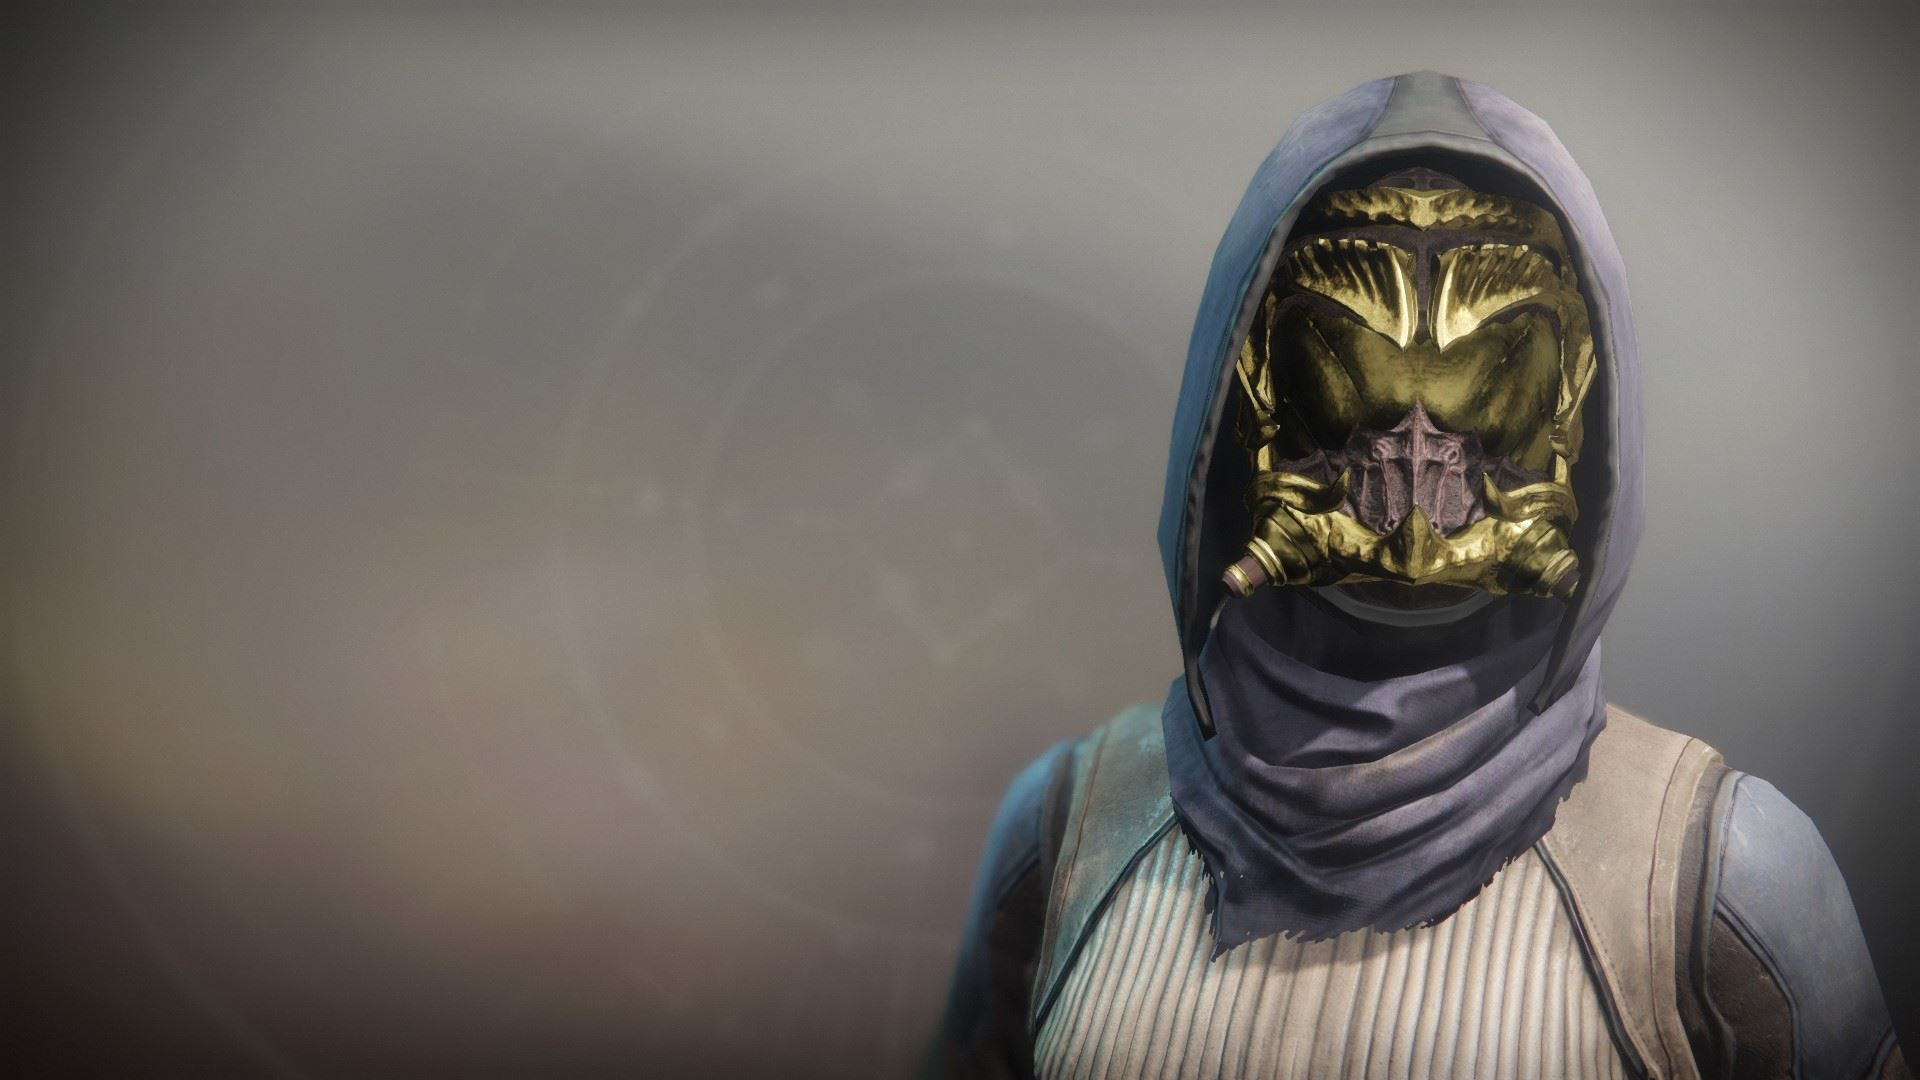 An in-game render of the Wormhusk Crown.